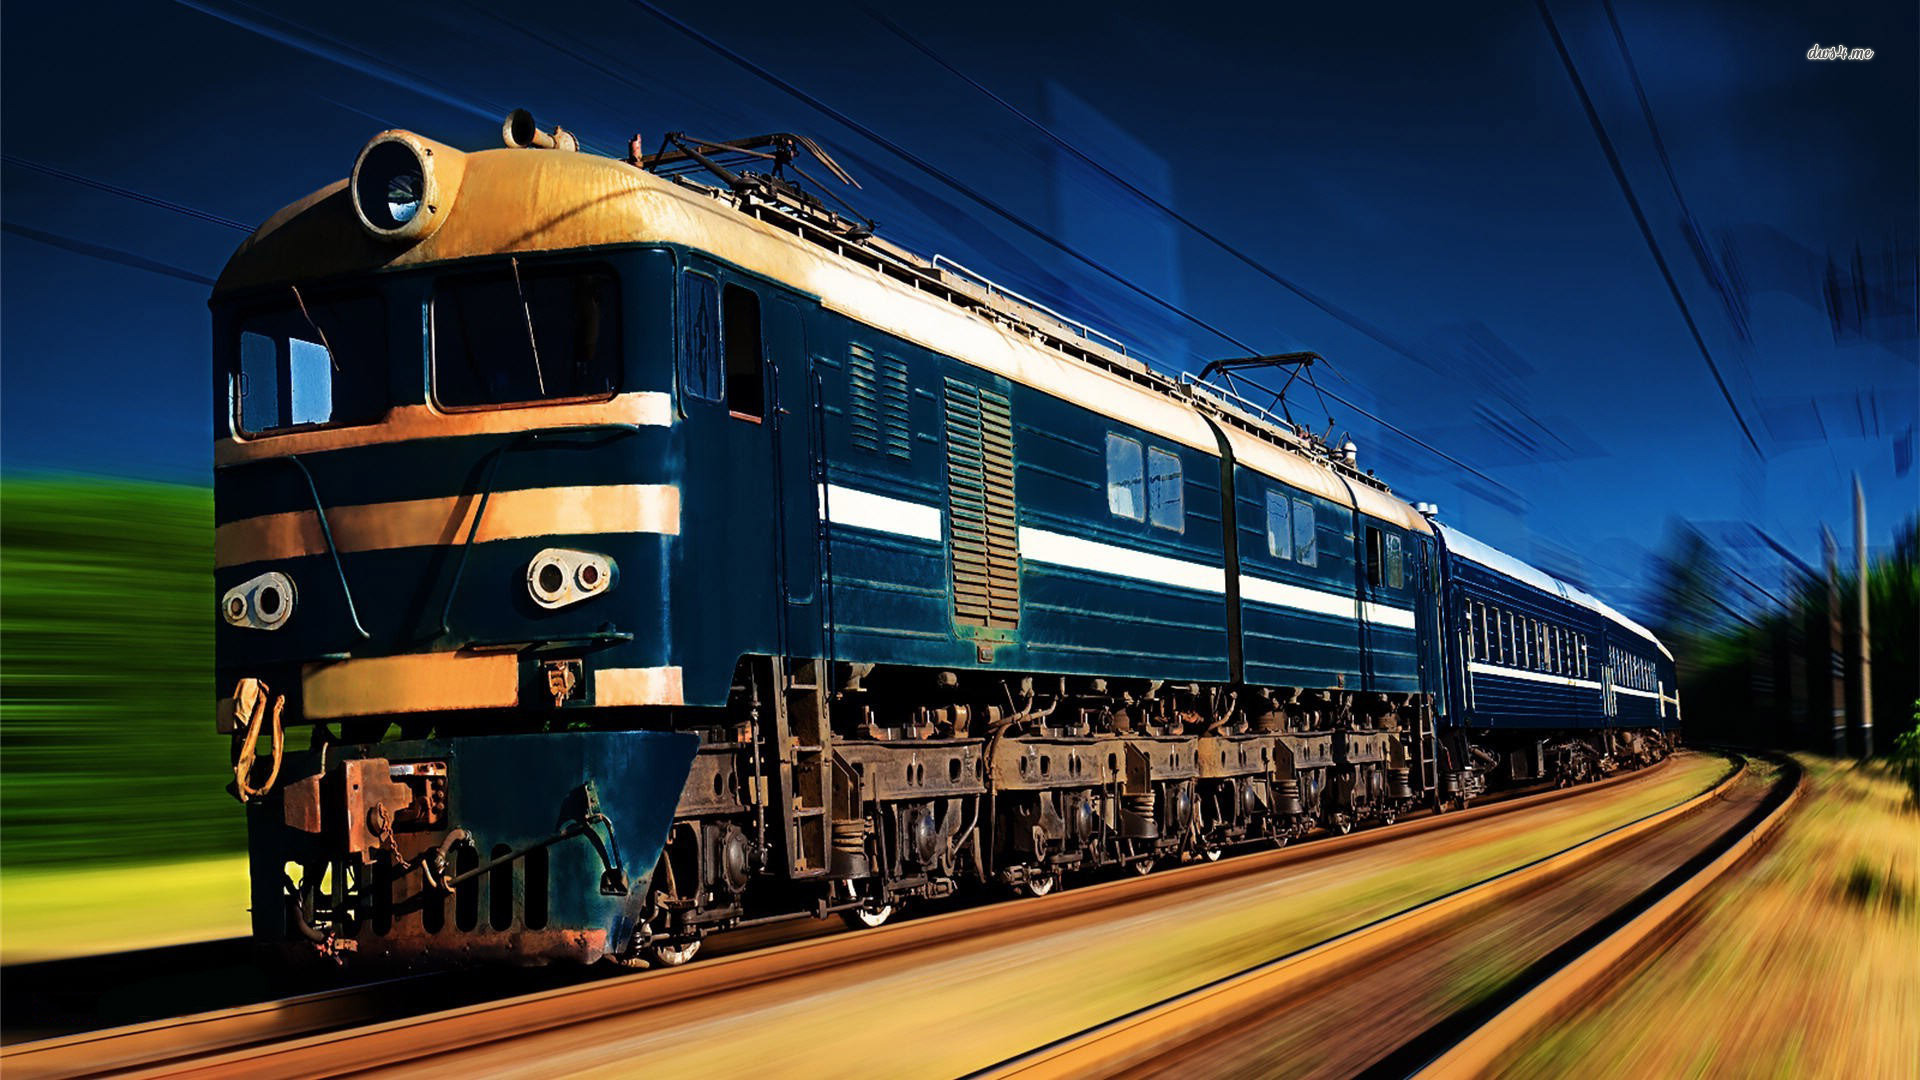 3d Moving Wallpapers For Windows 10 Train Hd Wallpaper Background Image 1920x1080 Id